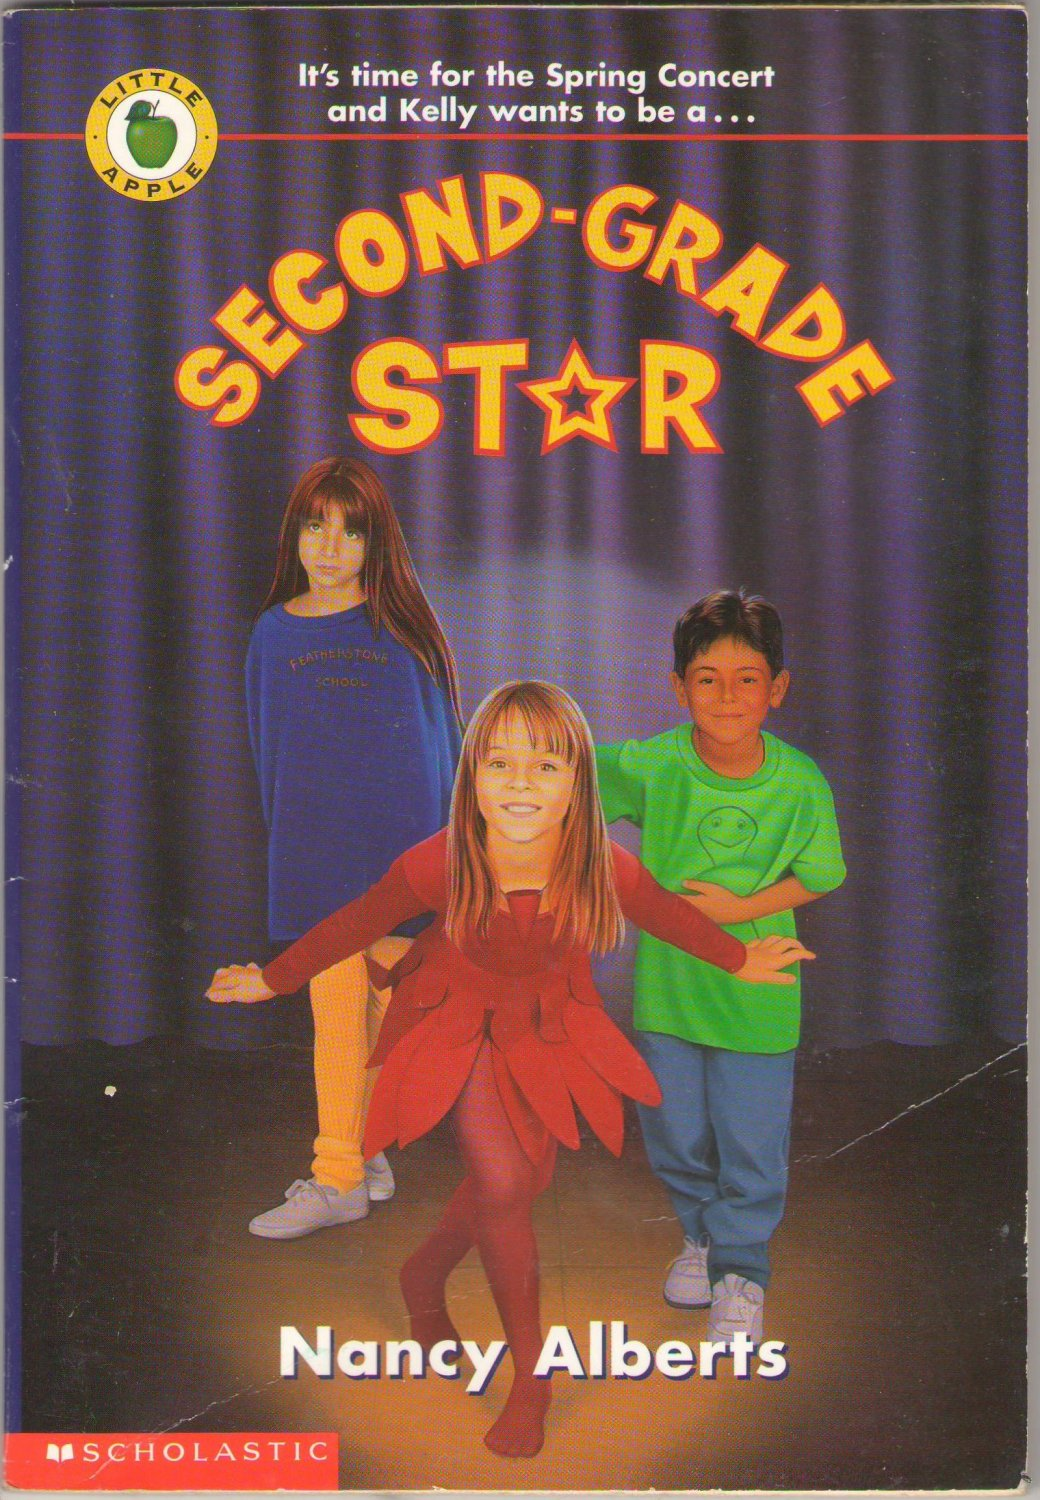 Second-Grade Star by Nancy Alberts SMC